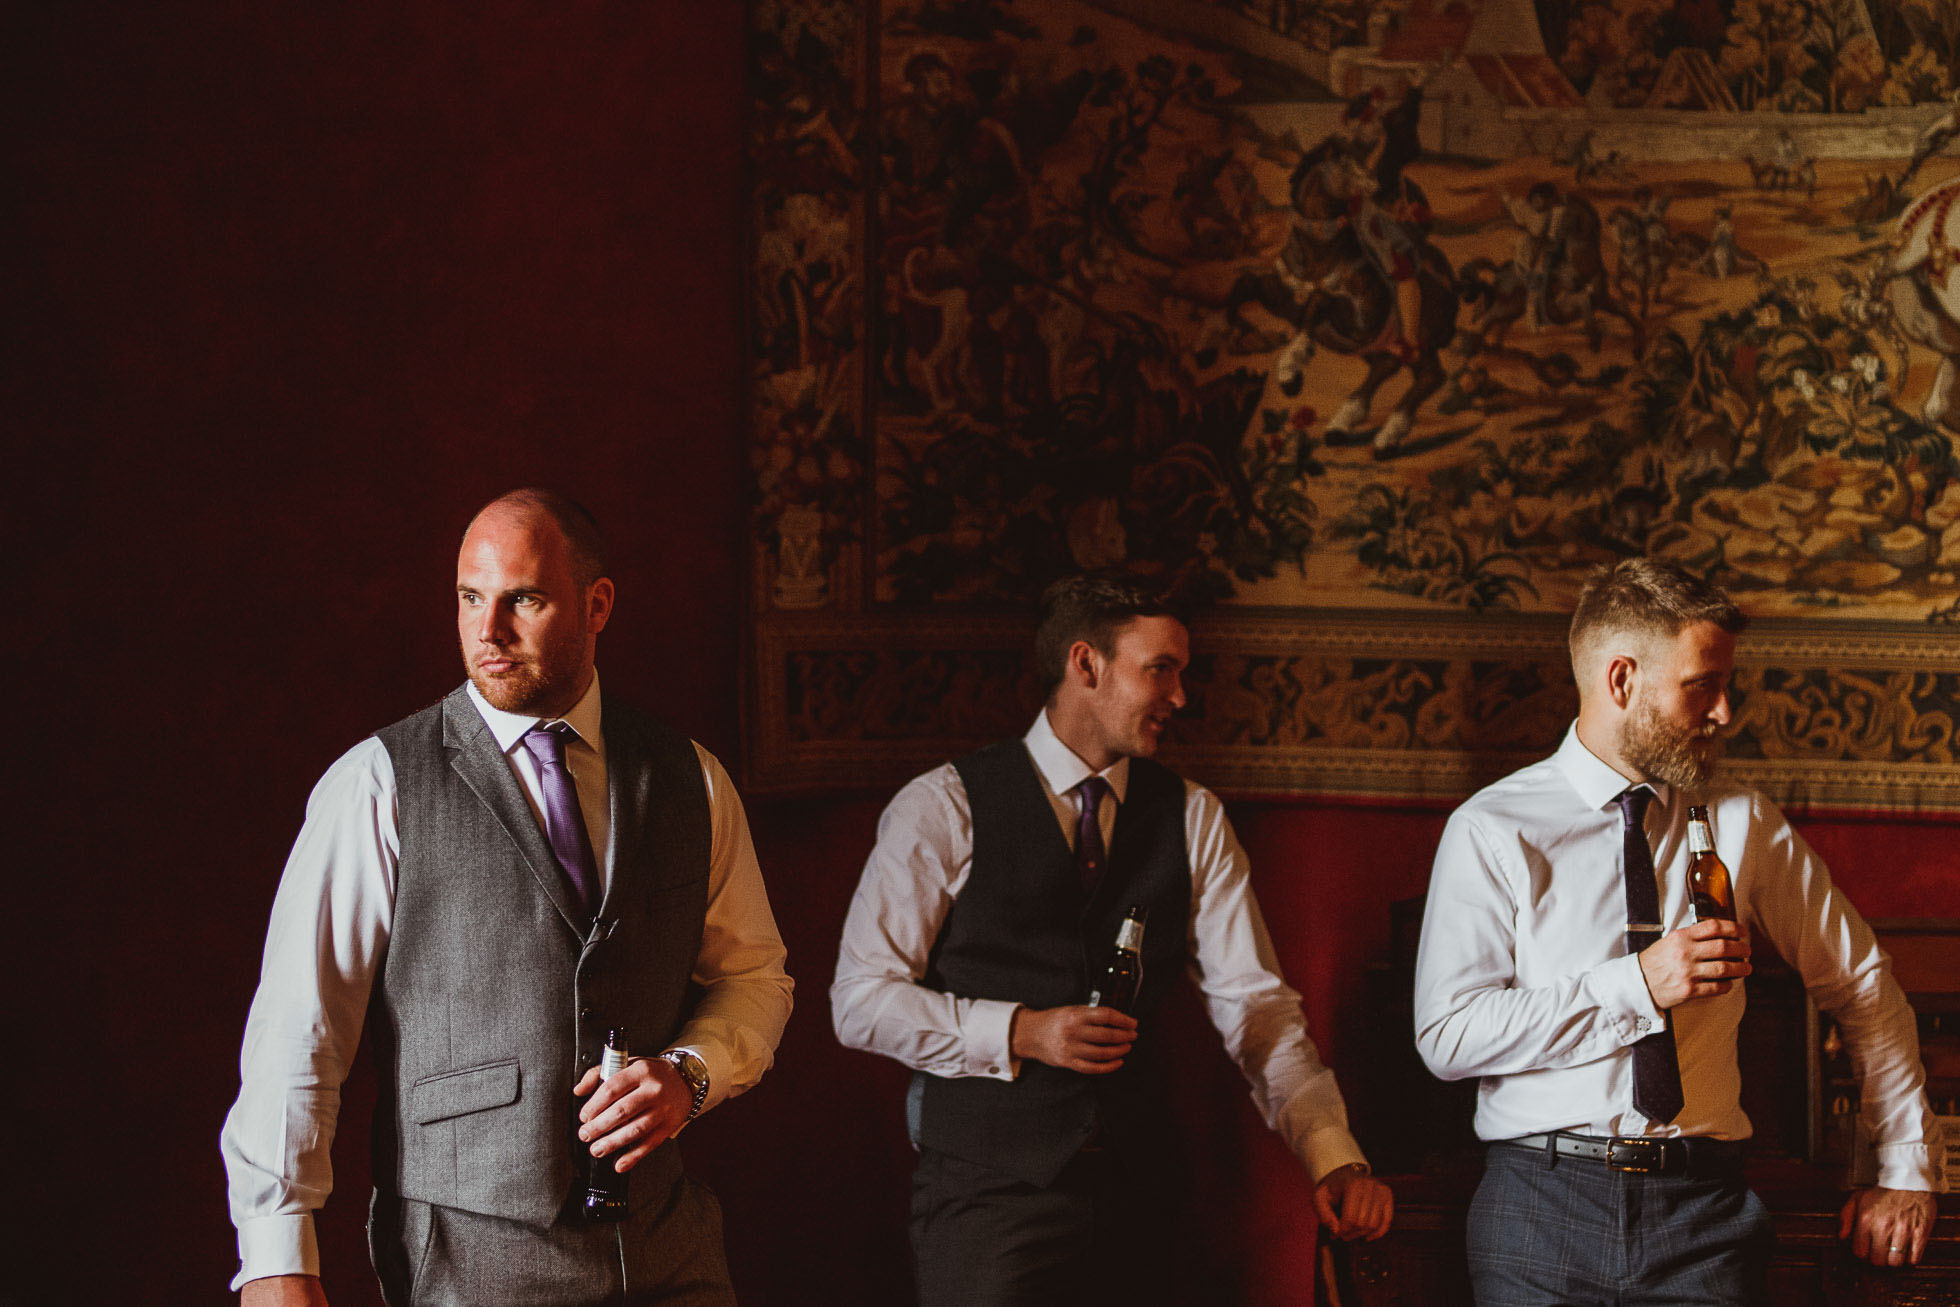 allerton_castle_wedding_photographer-20.jpg